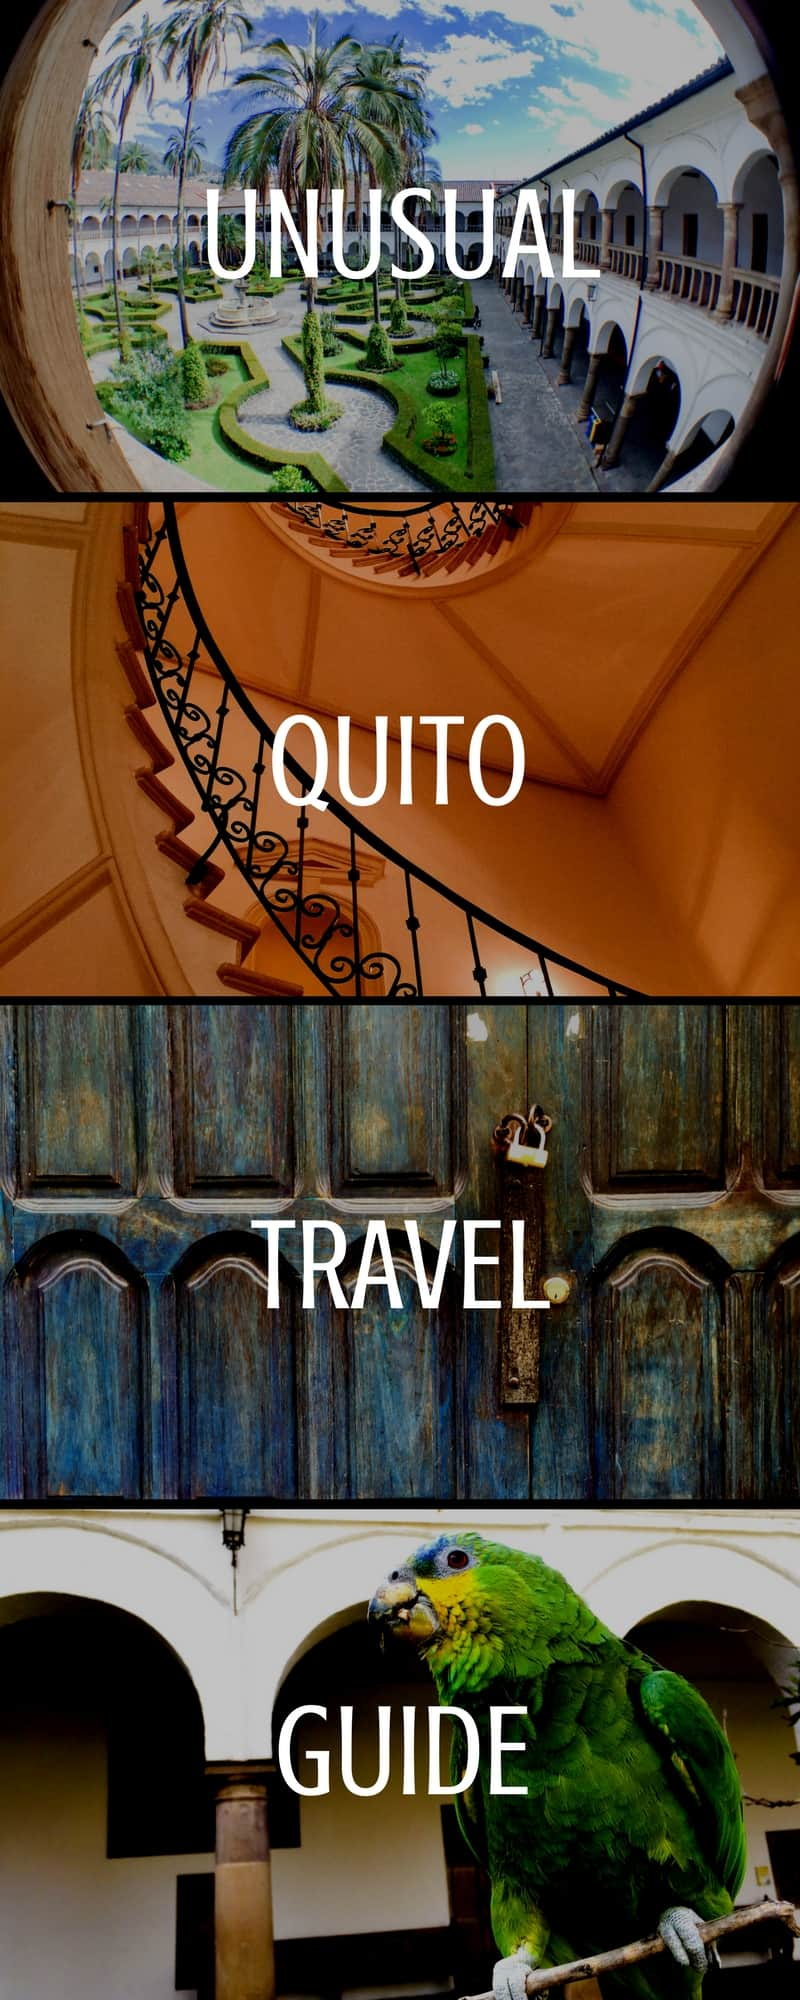 Unusual things to do in Quito - Travel Guide